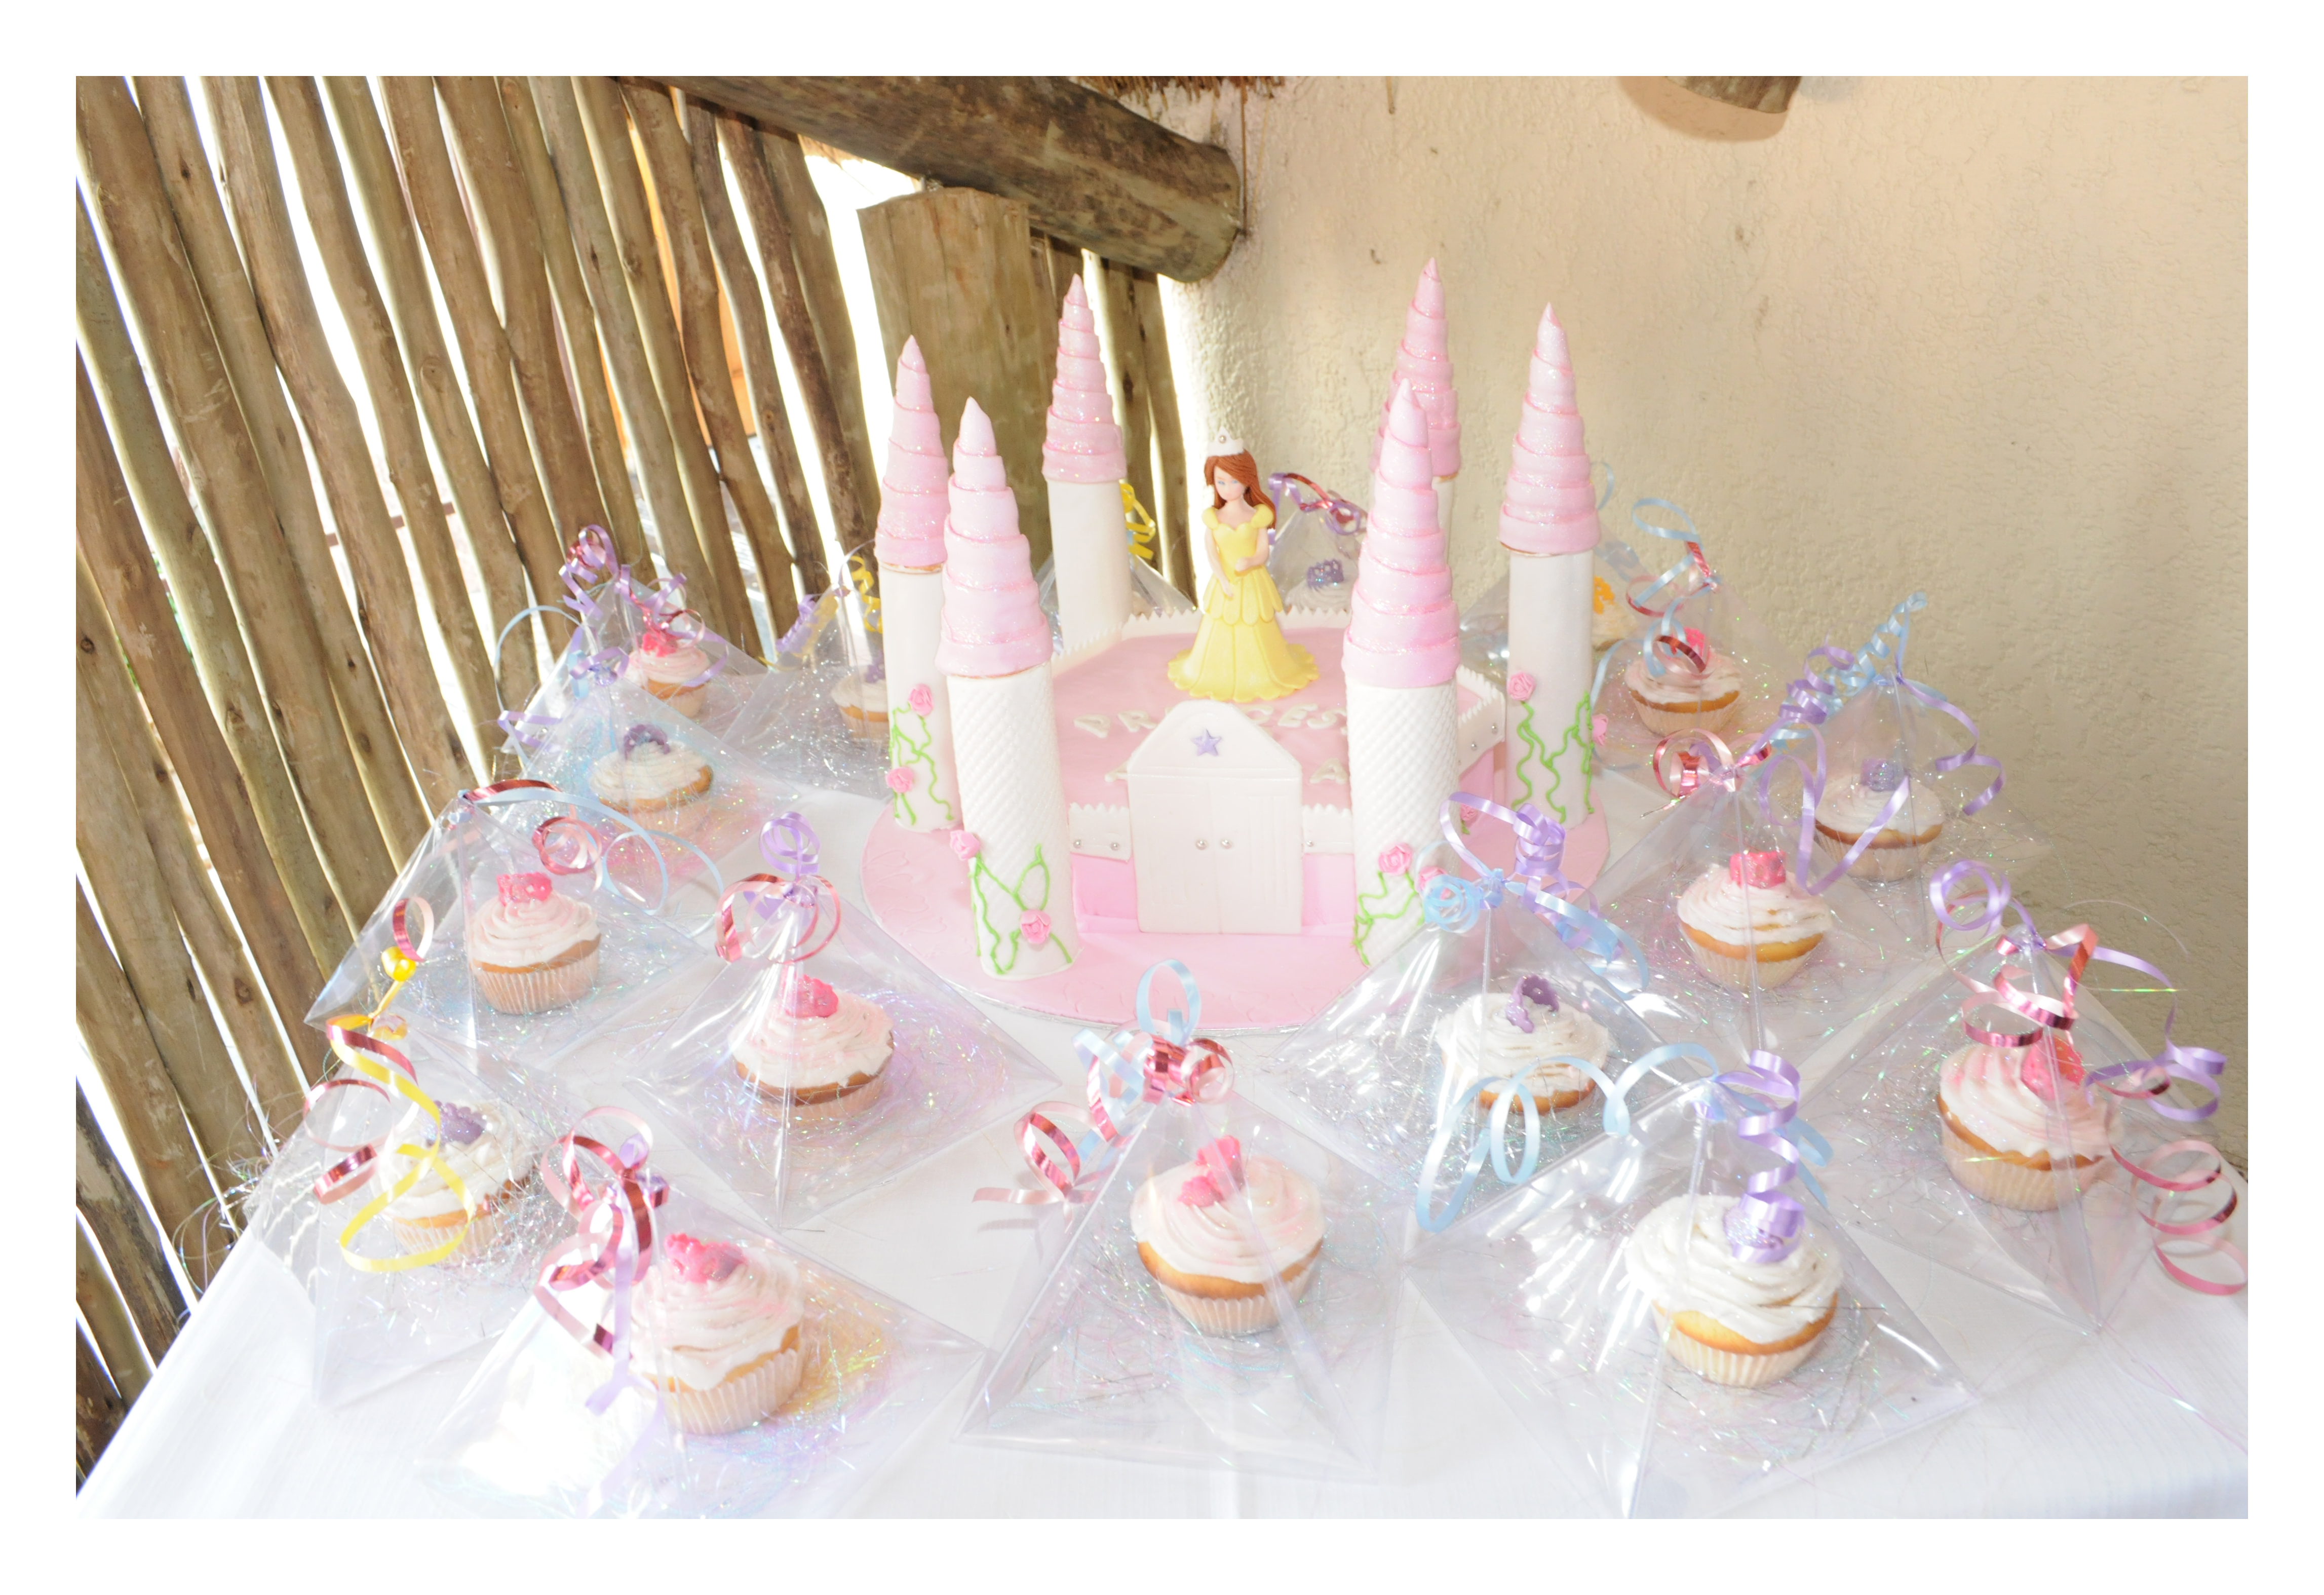 The Little Mermaid Beautifully Baked Cakes And Catering